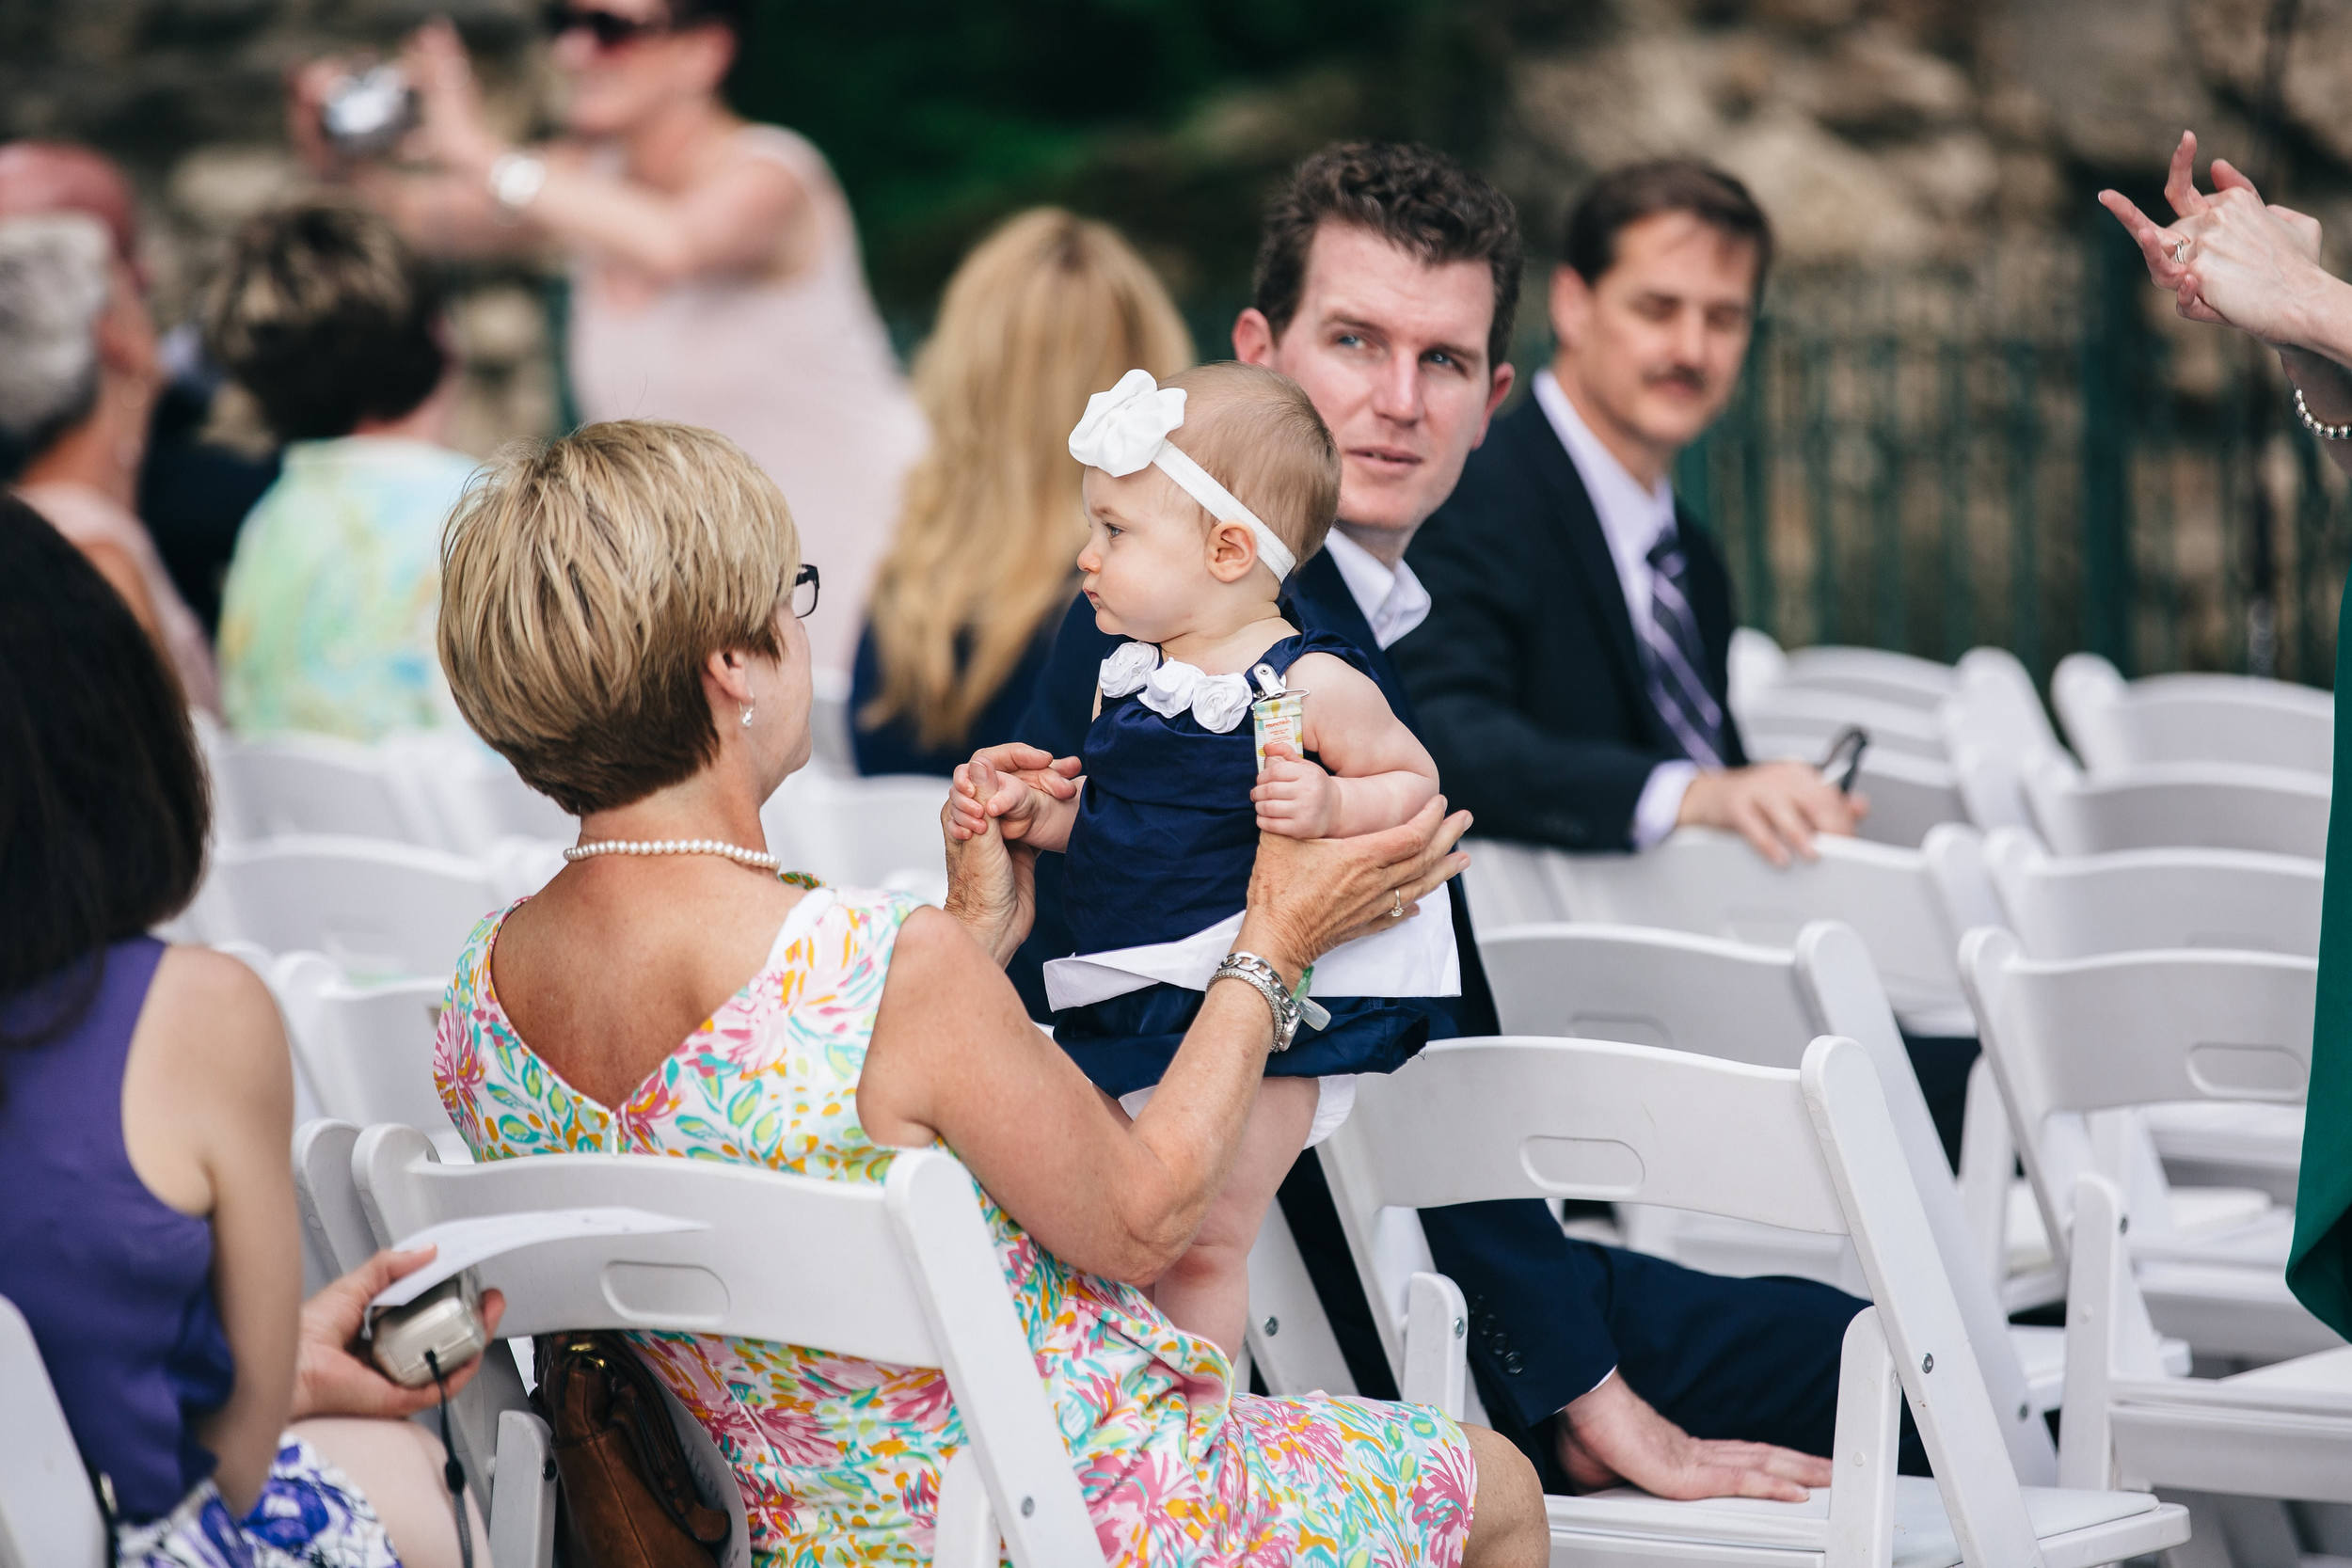 Wedding guests at ceremony at Nazareth Hall.